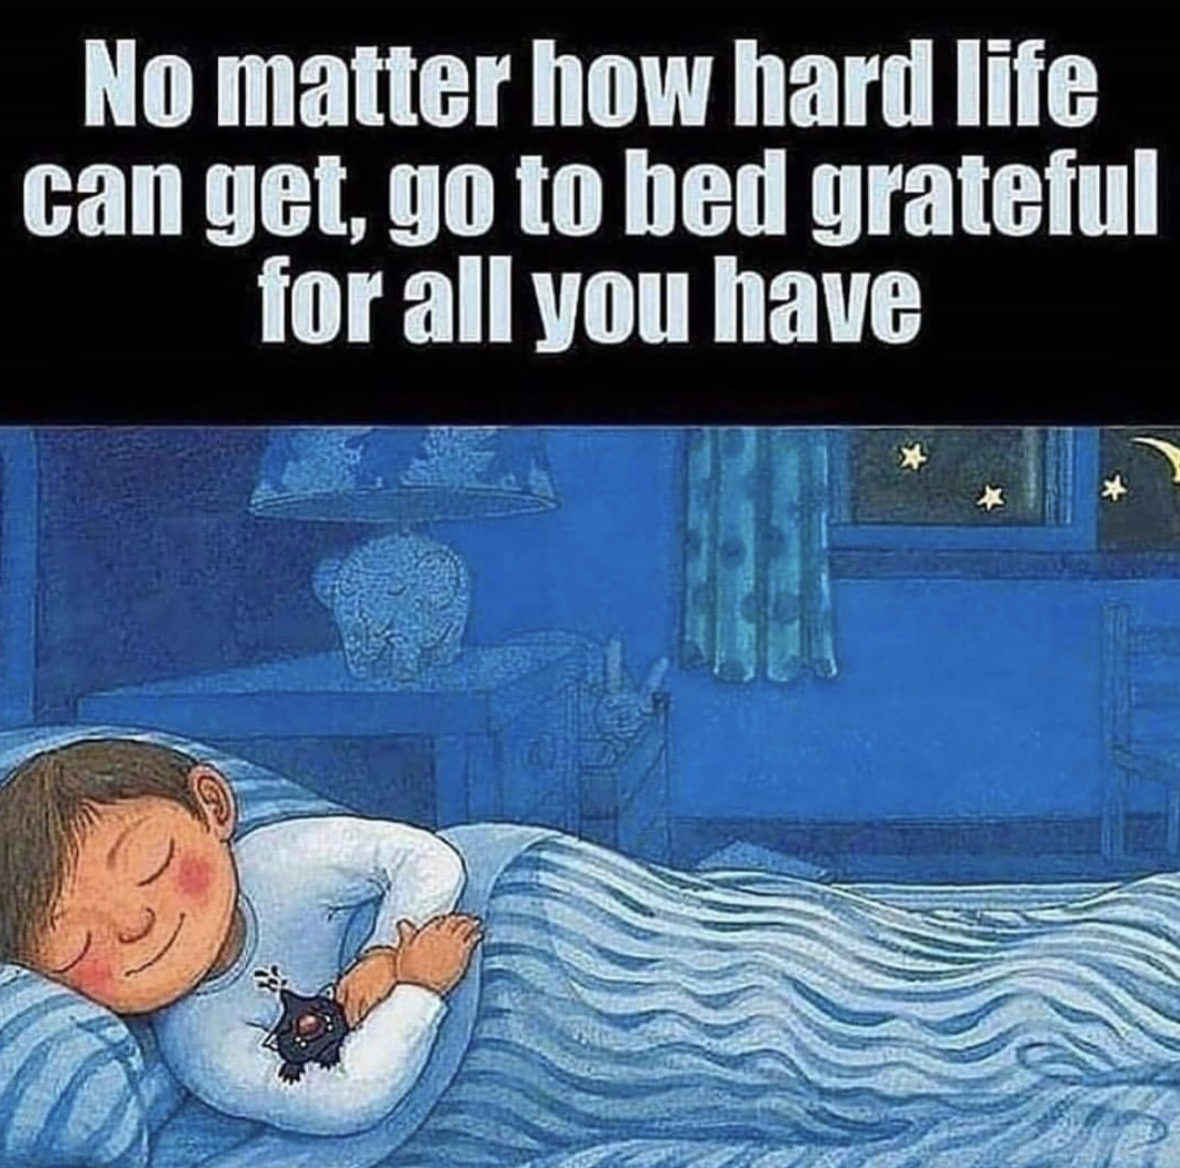 [Image] No matter how hard life can get, go to bed grateful for all you have.